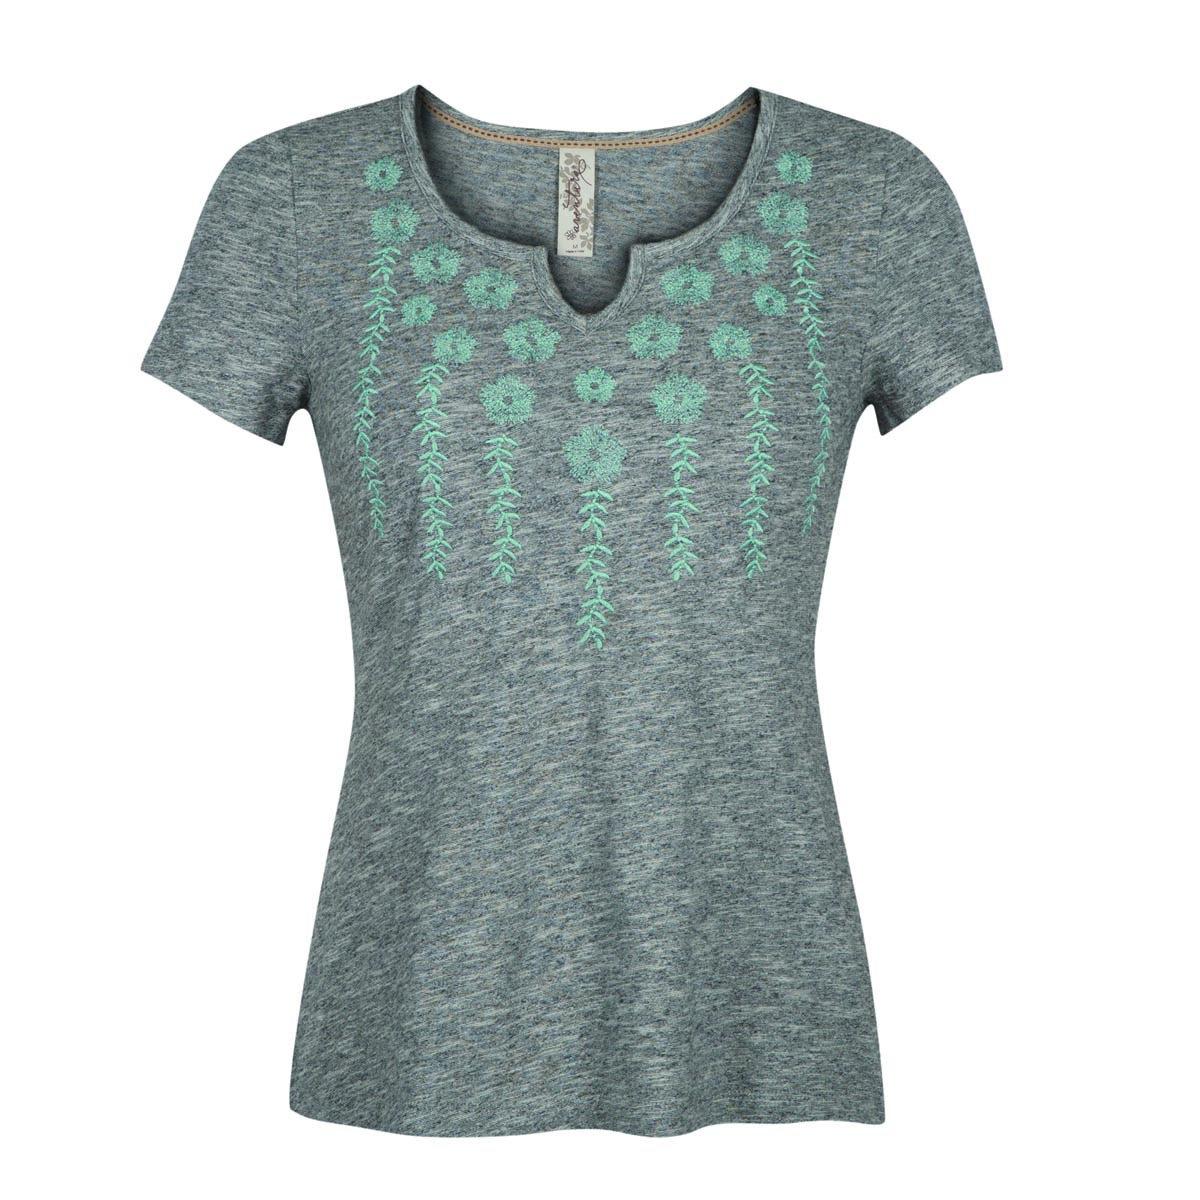 Aventura Women's Maisie Short Sleeve Top